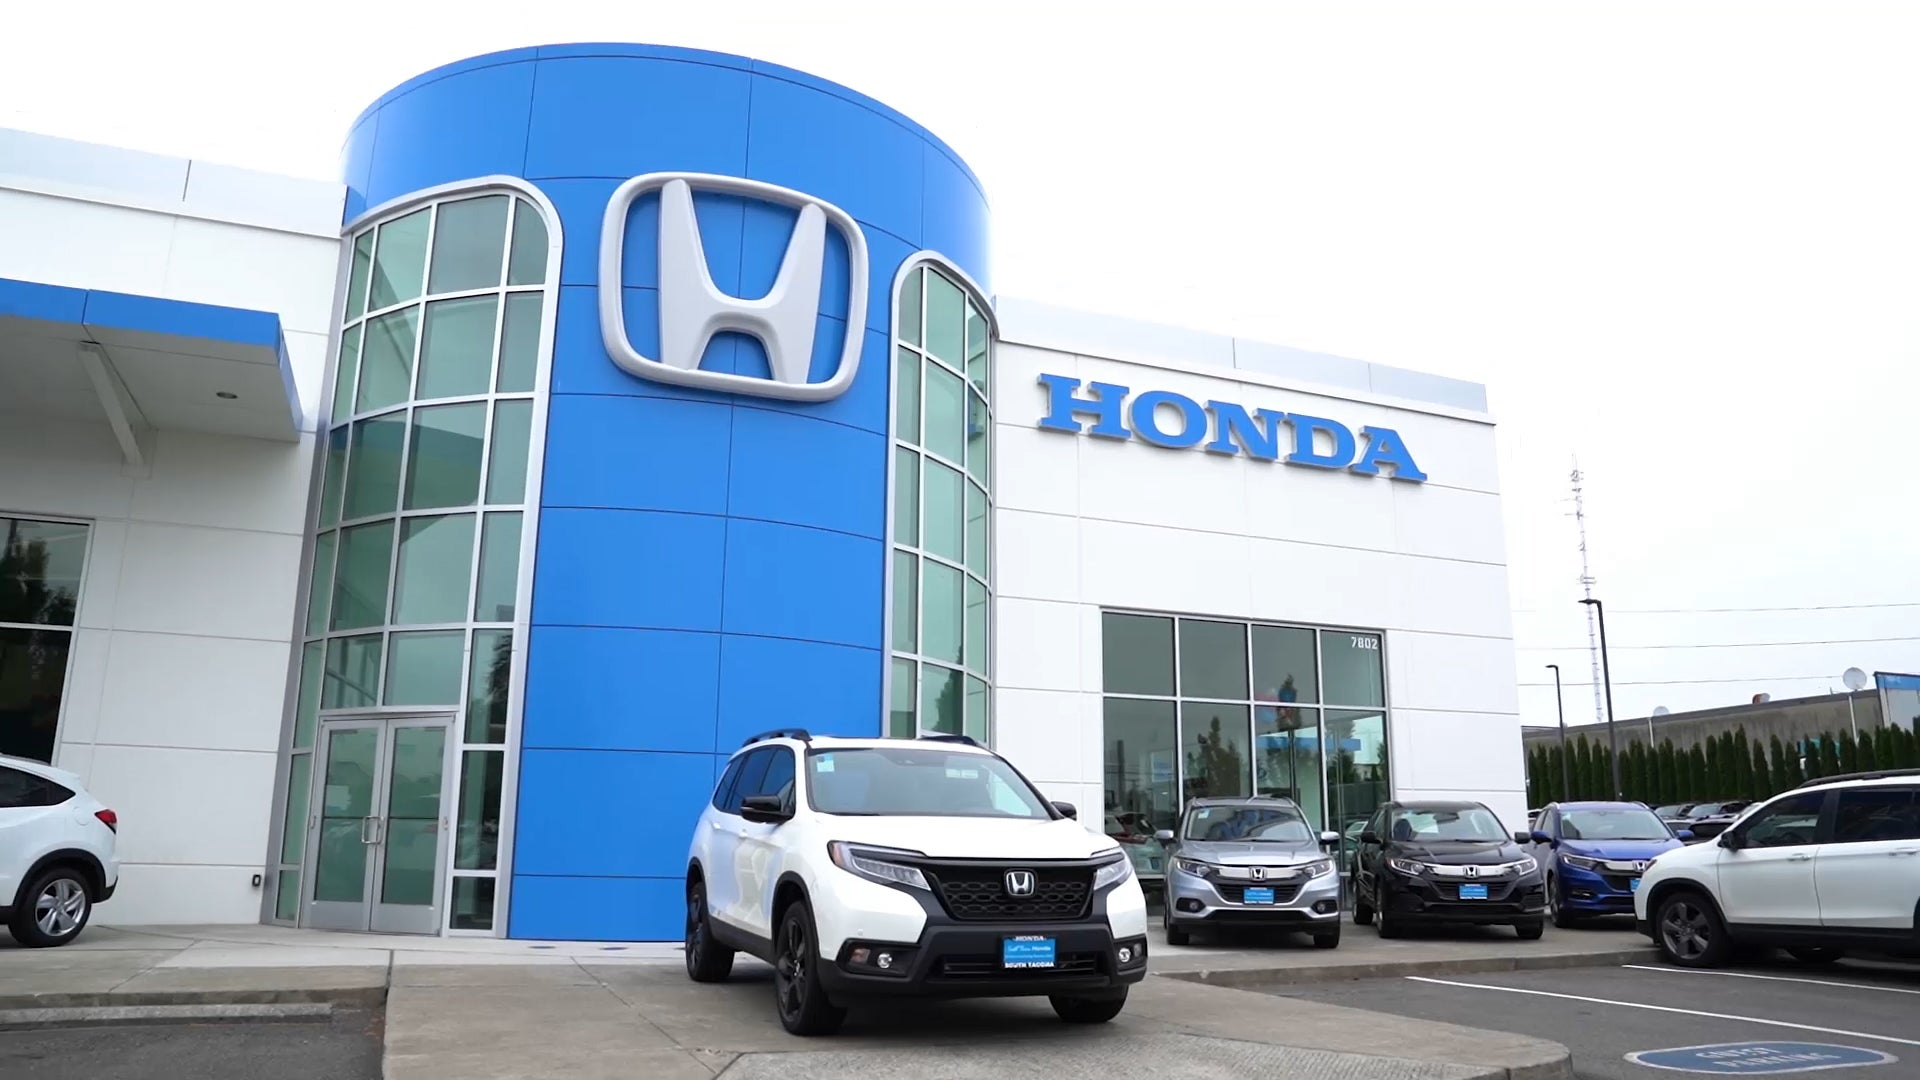 Honda Dealerships Near Me >> Honda Dealership Used Cars Tacoma Wa South Tacoma Honda